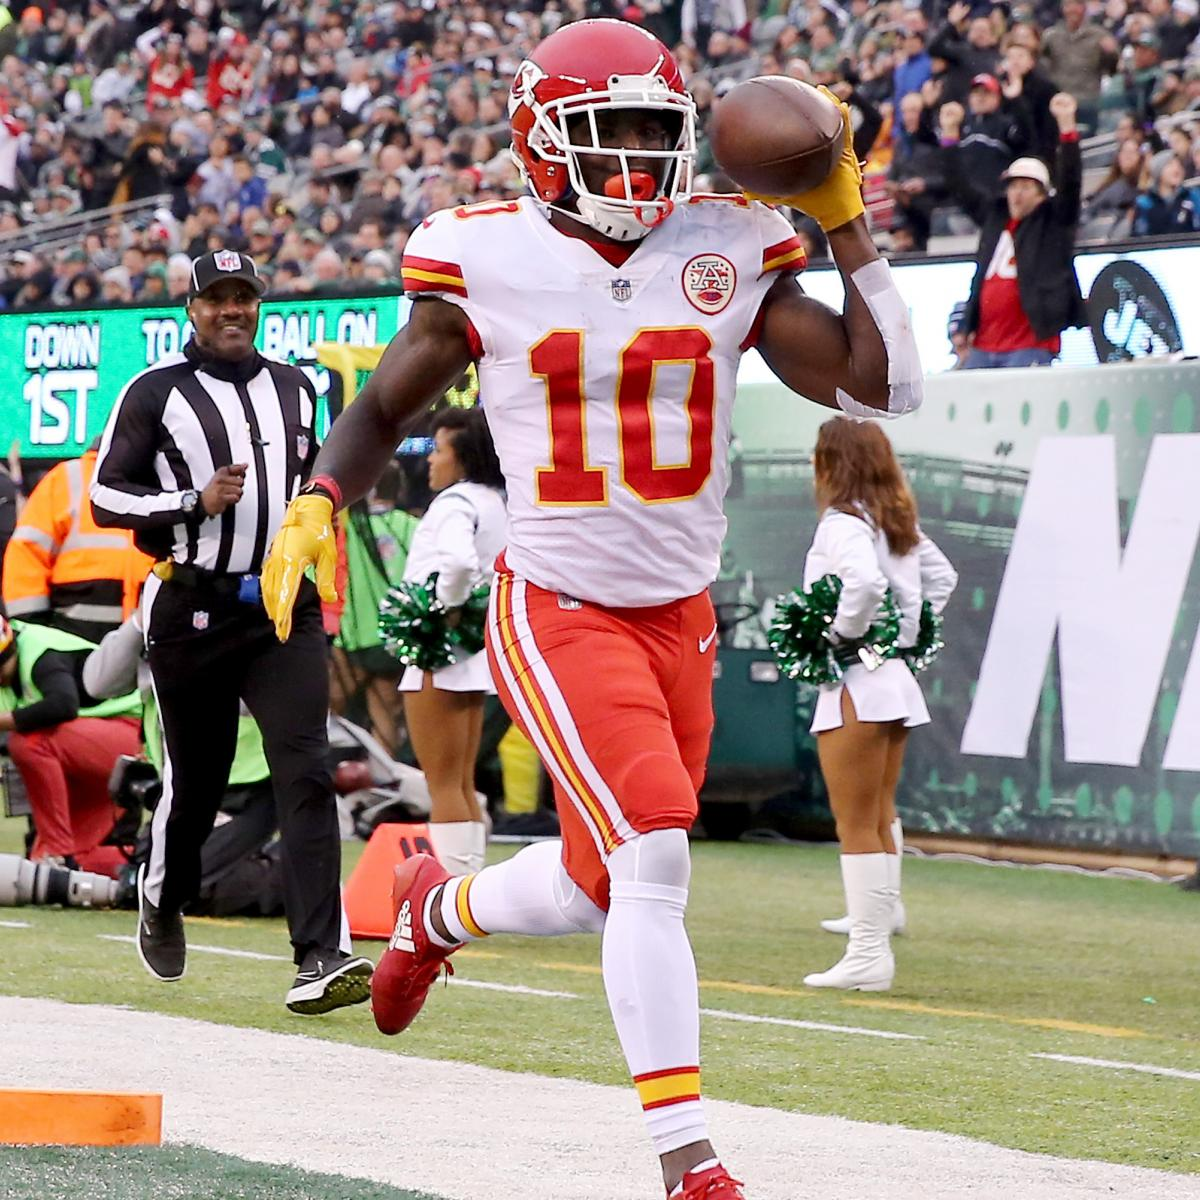 Fantasy Football Week 14: Rankings, Projections and Waiver-Wire Tips